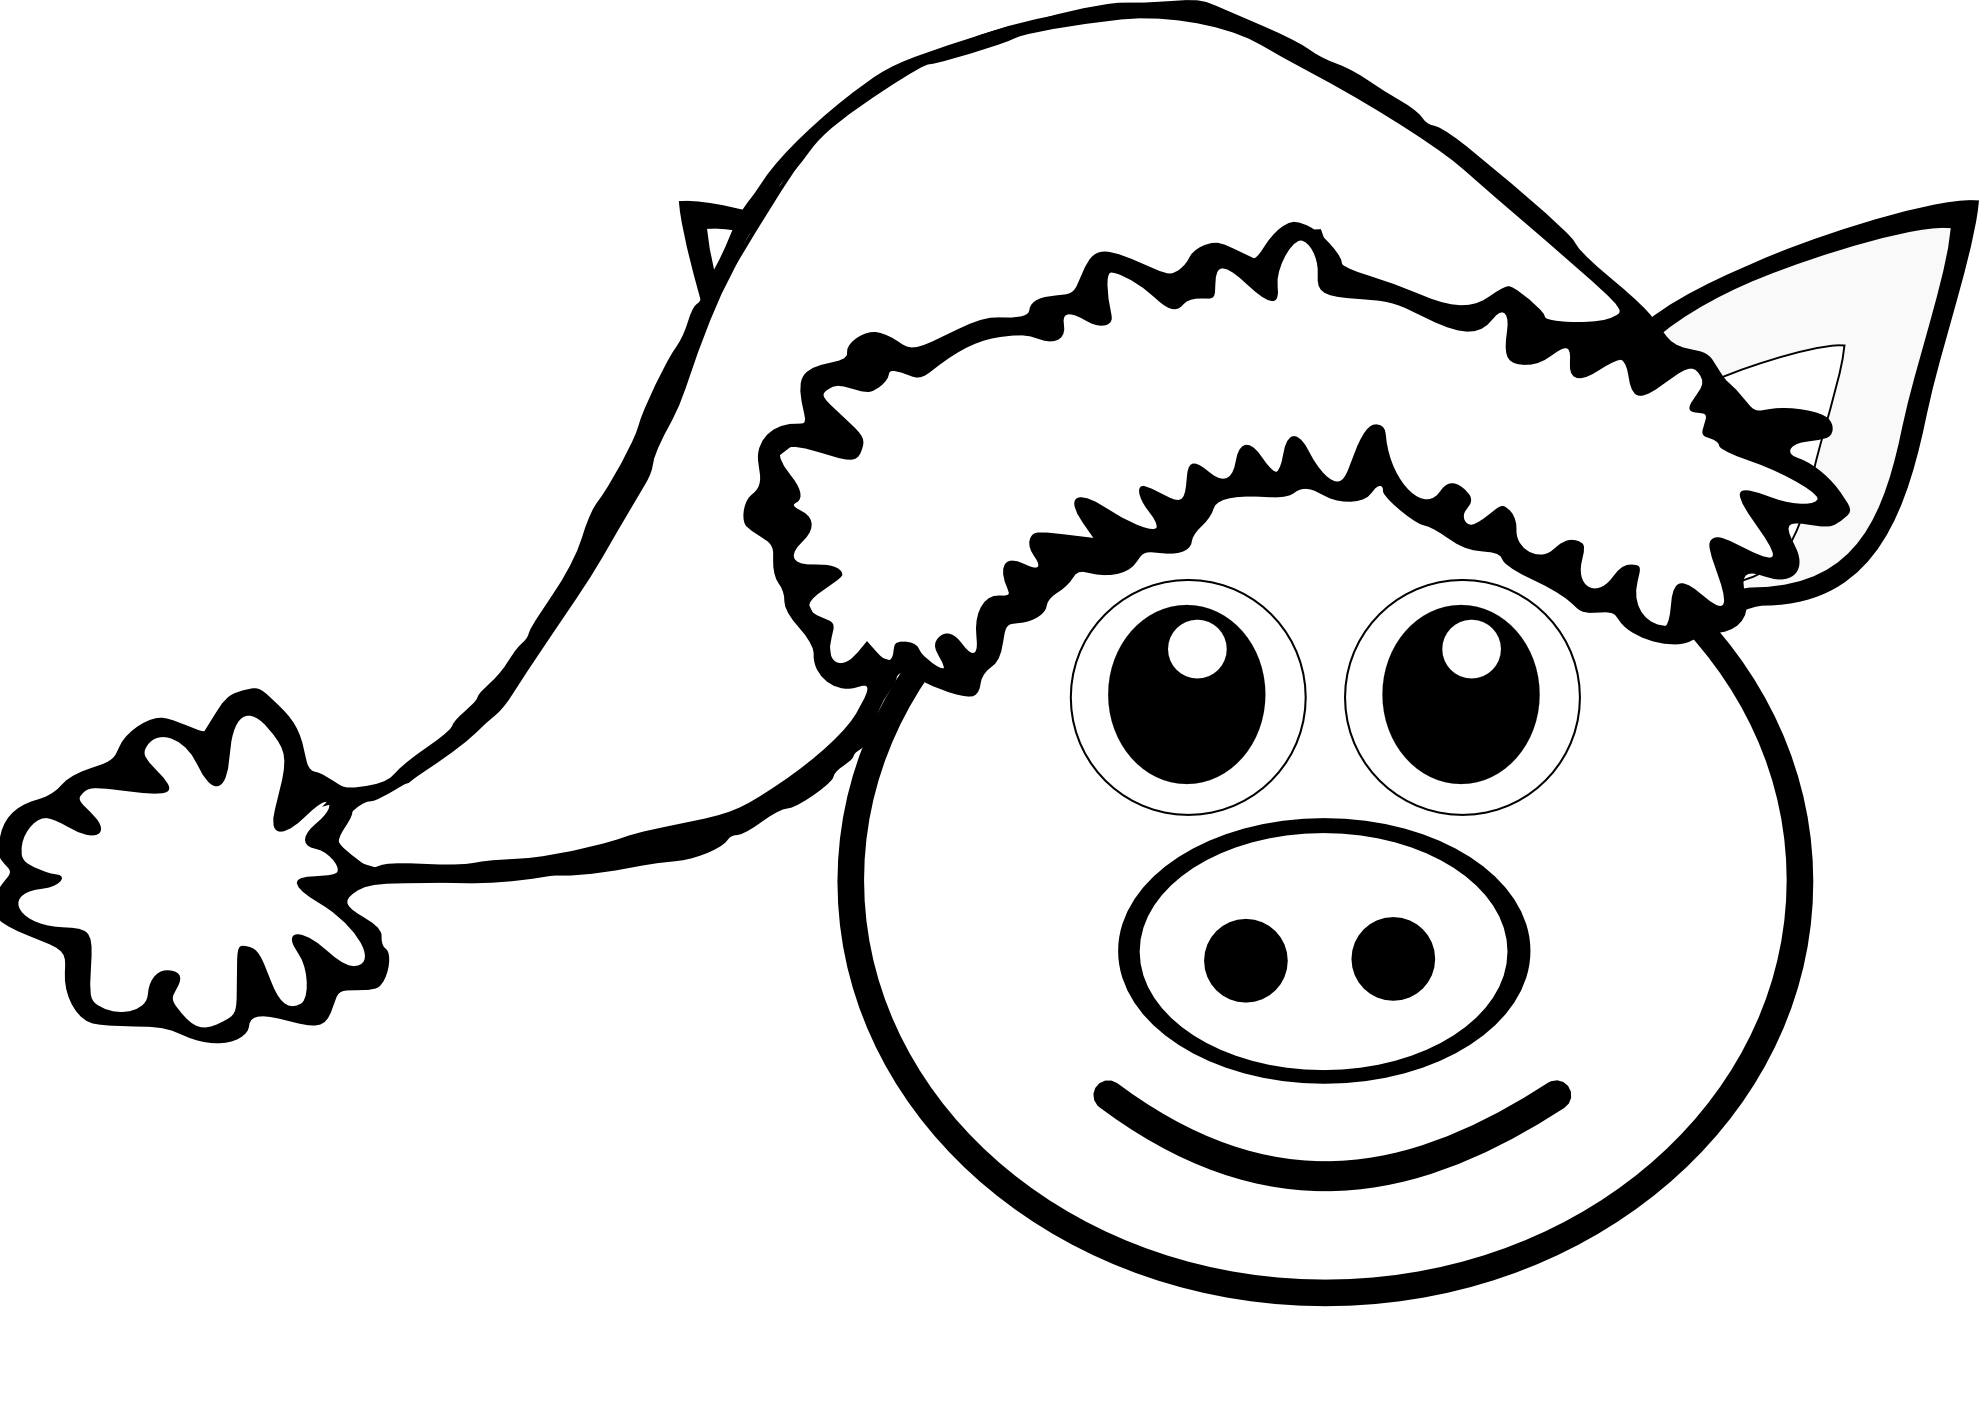 Line Drawing Pig Face : Pig line drawing clipart best